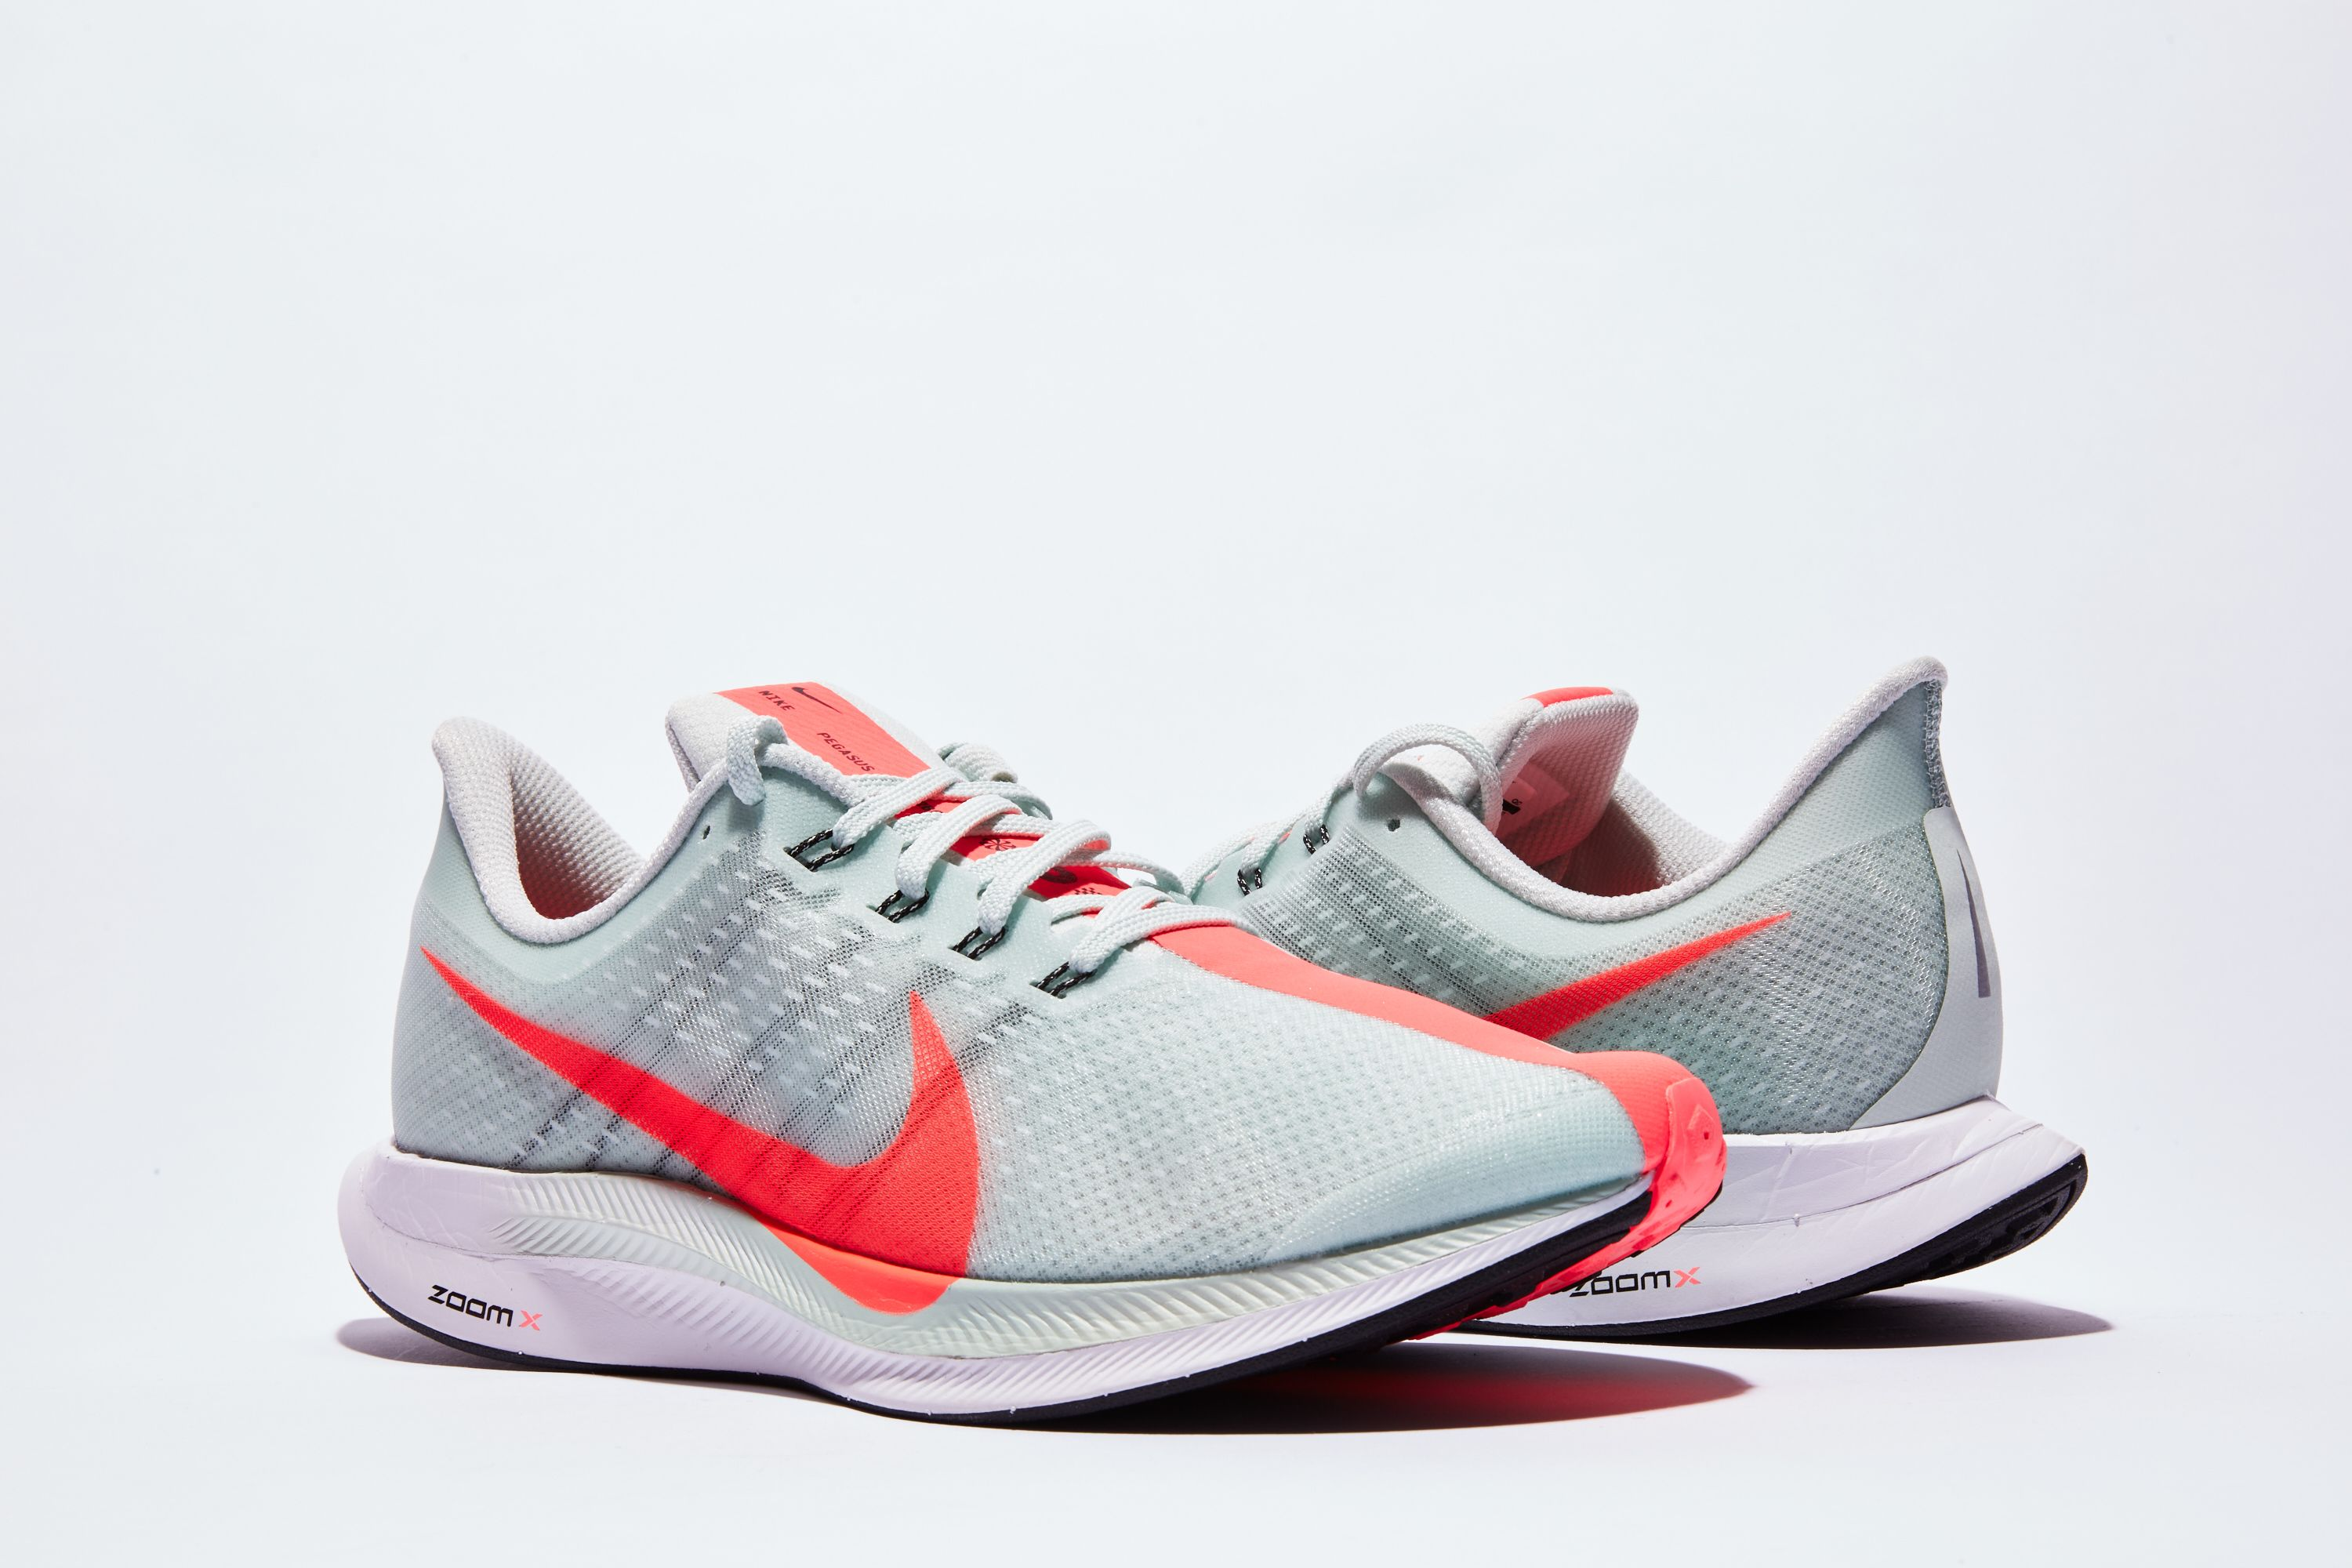 20e907387e7a0 Nike Zoom Pegasus 35 Turbo - Running Shoes for Speed